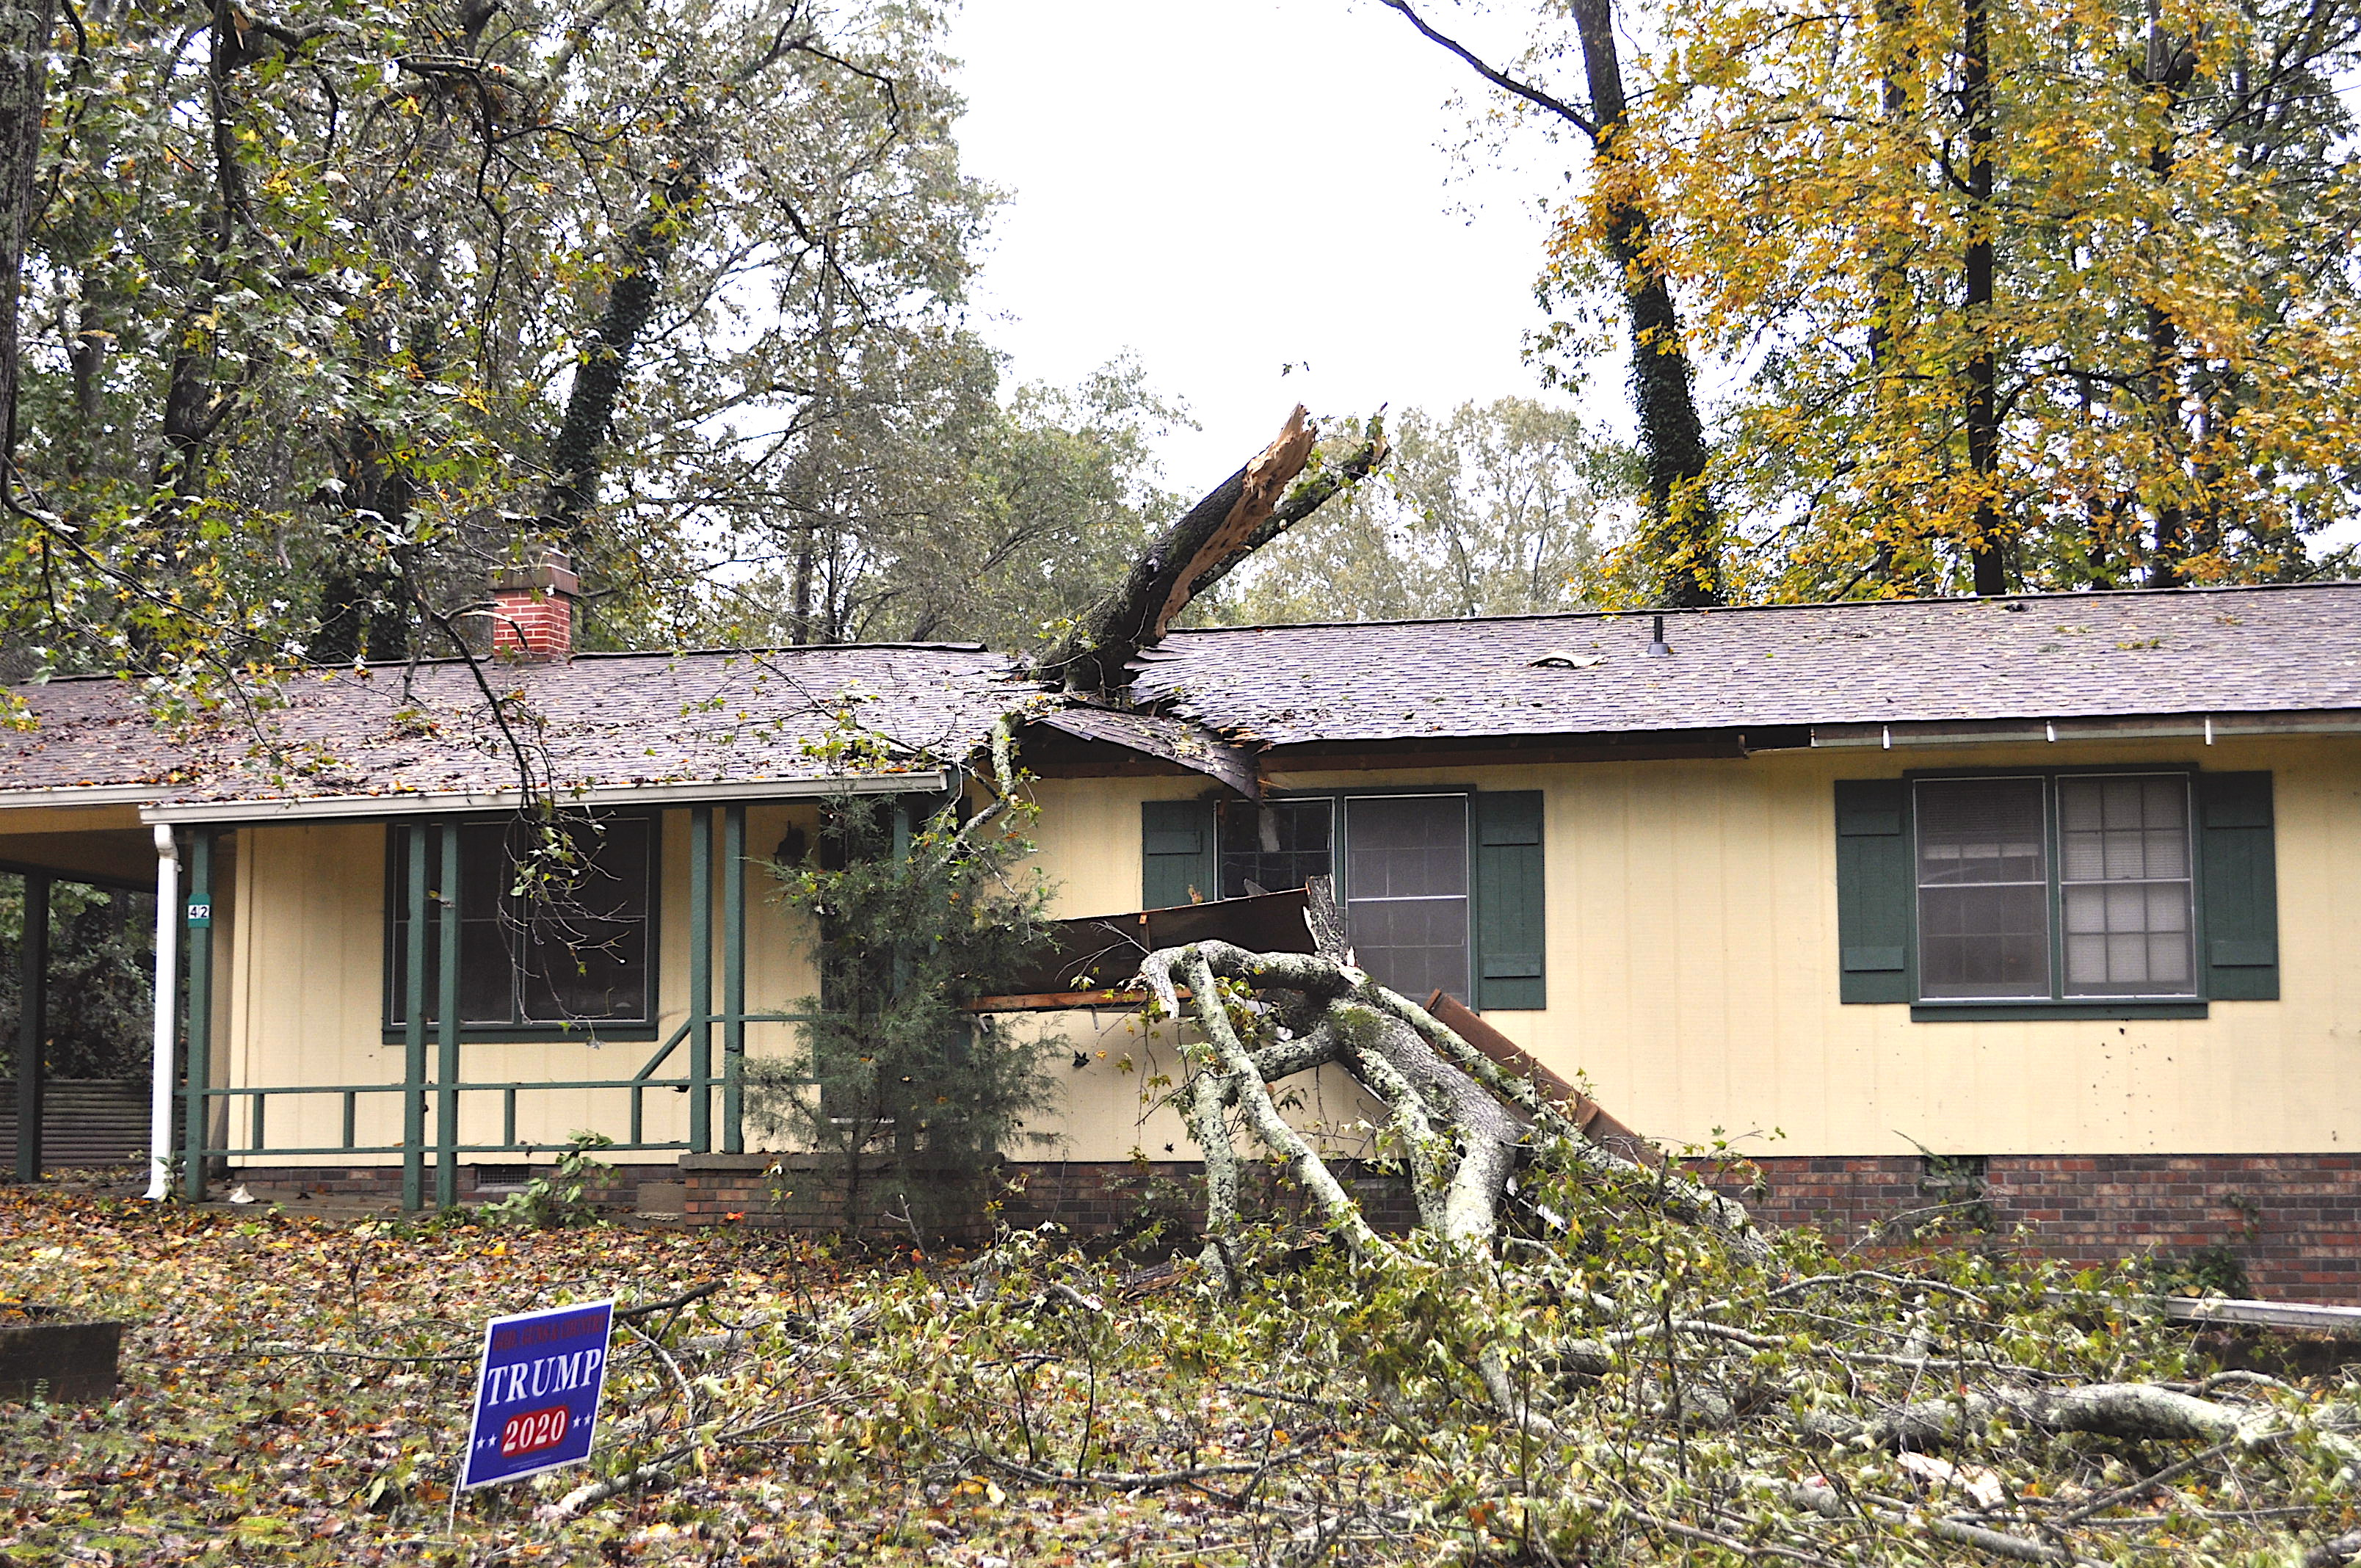 This home on Andrews Court suffered damage from fallen trees after the ramnanrs of Tropical Storm Zeta blew through Stephens County the night of Oct. 28-29.